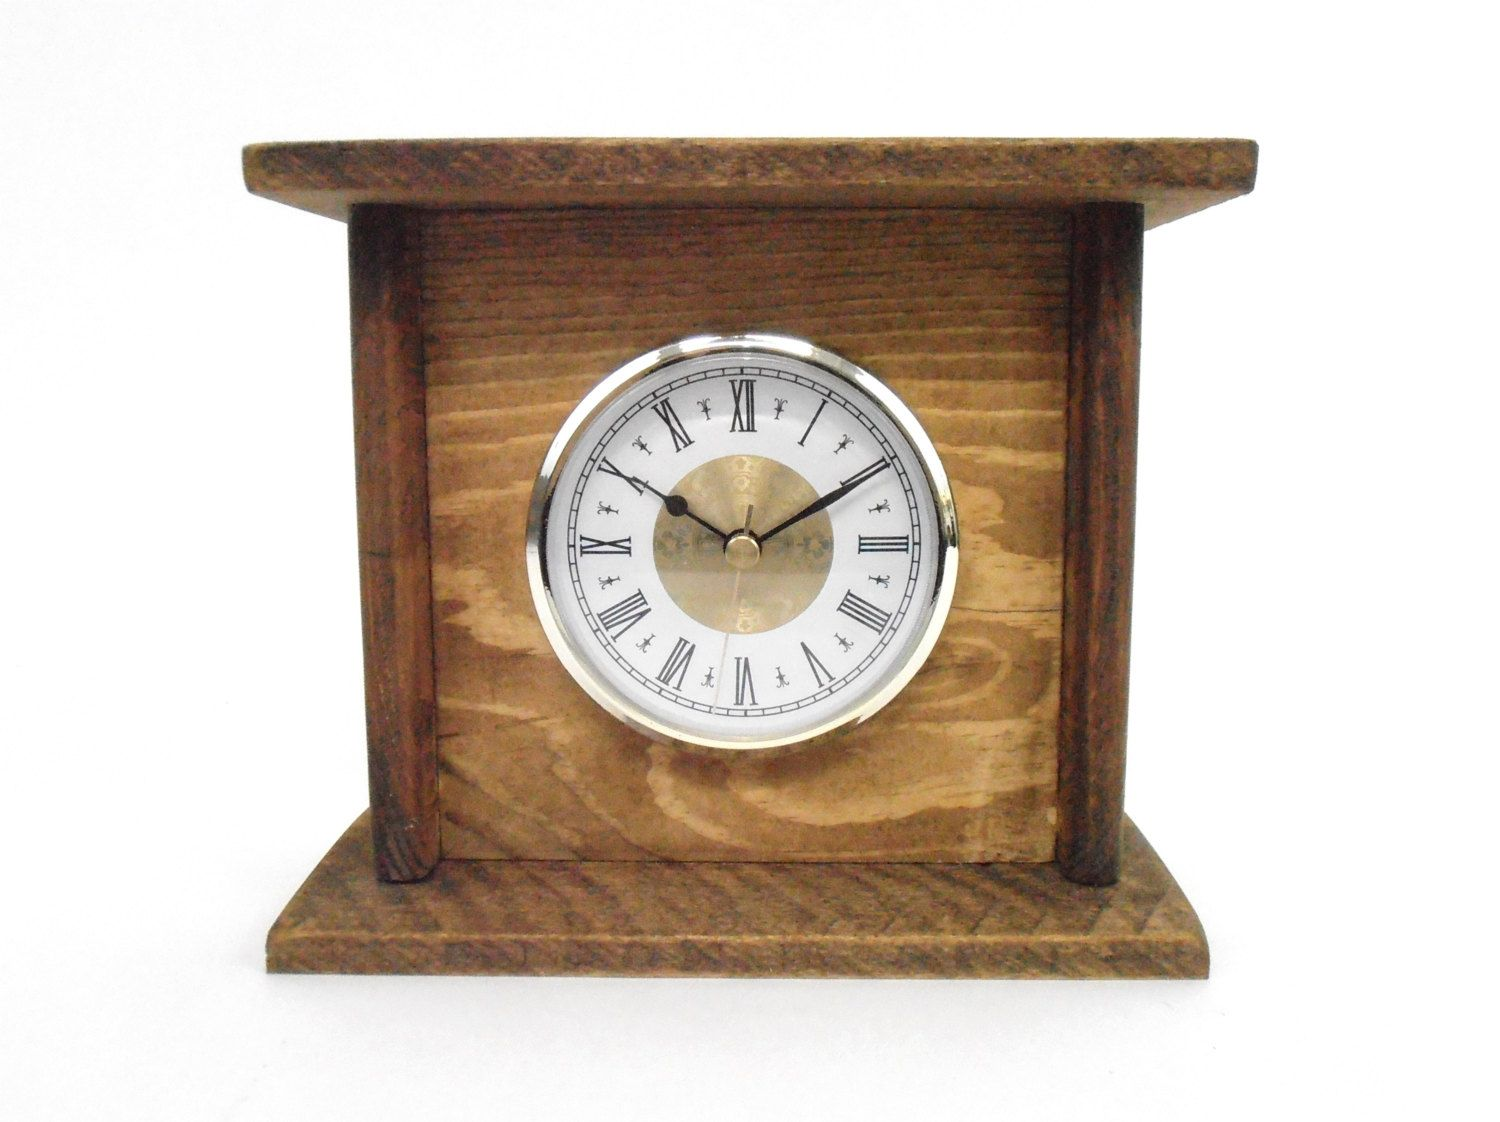 Clock Pallet Wood Clock Rustic Wood Clock Rustic Pallet Wood Mantel Clock Mantel Clock Mantle Clock Wood Clock Rustic Pallet Wood Clock Nastolnye Chasy Chasy